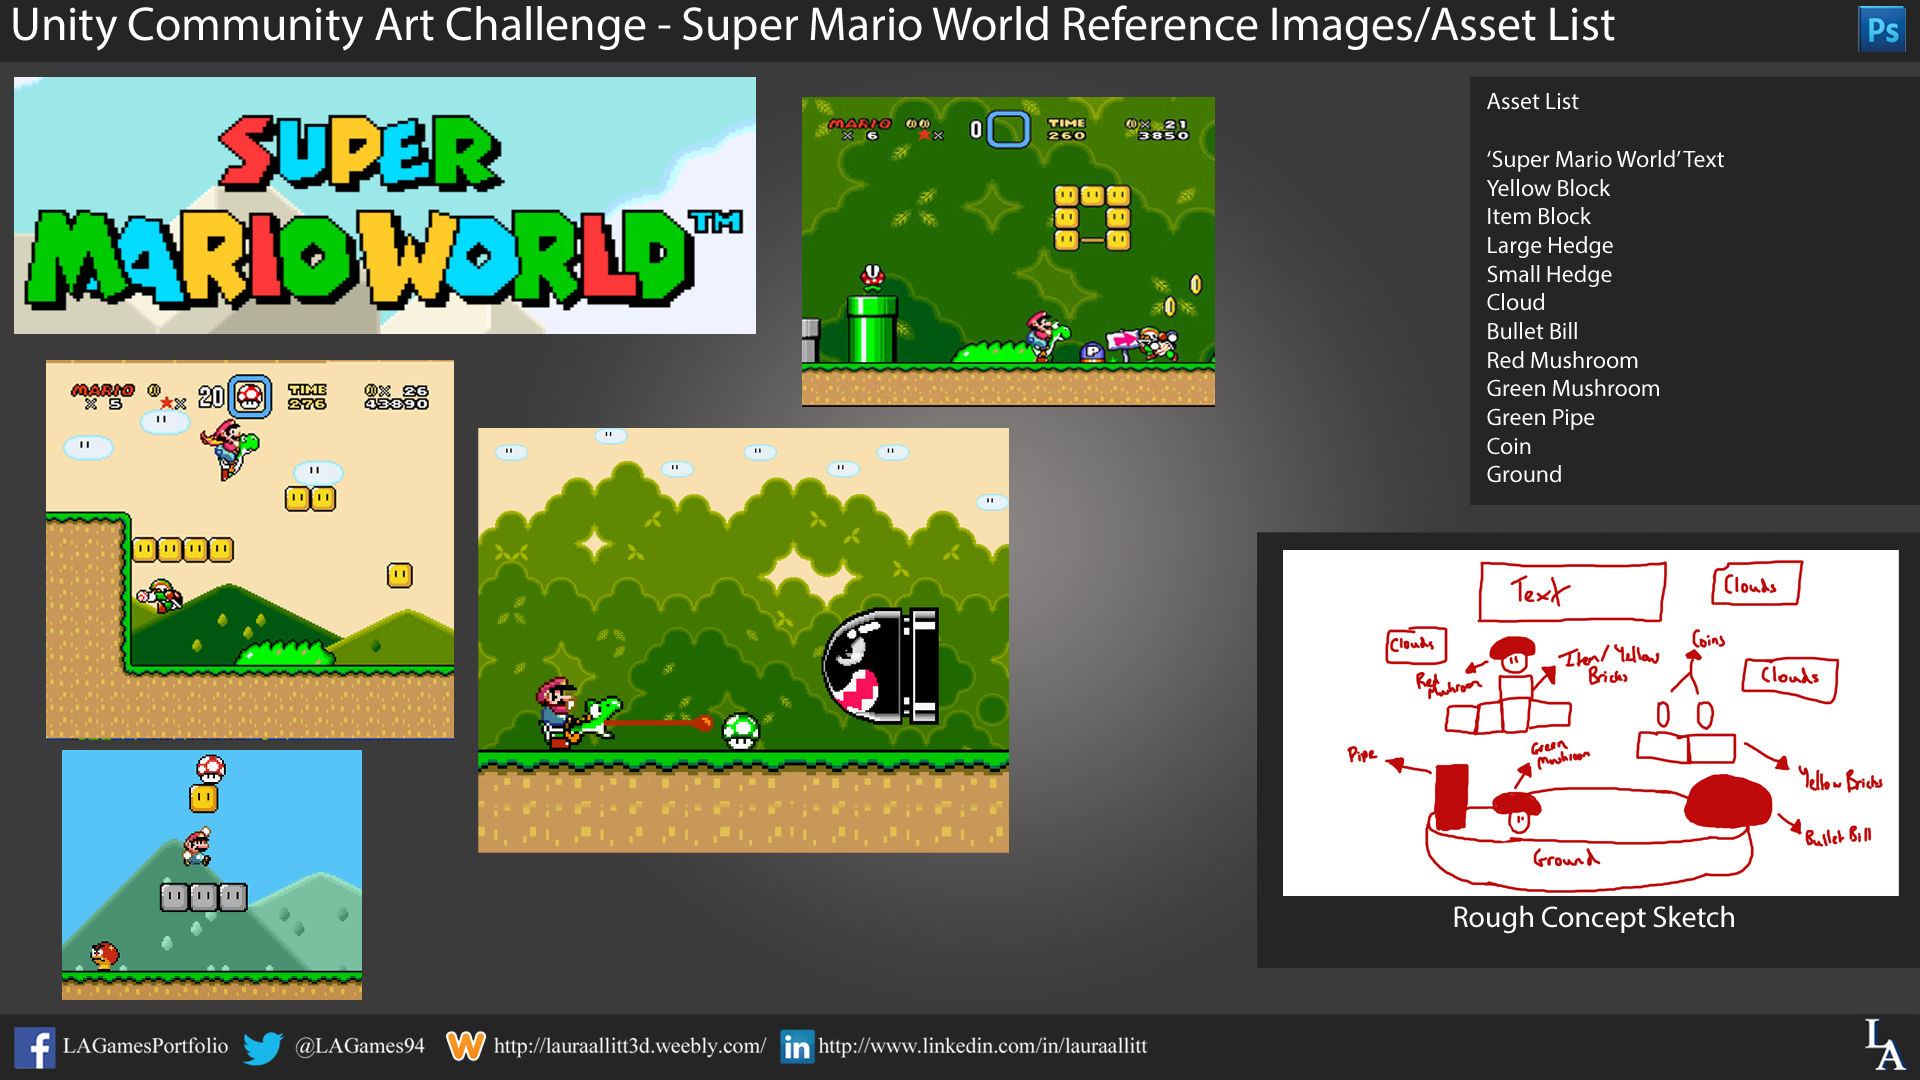 Unity Community Art Challenge - SMW Reference Images and Asset List.png